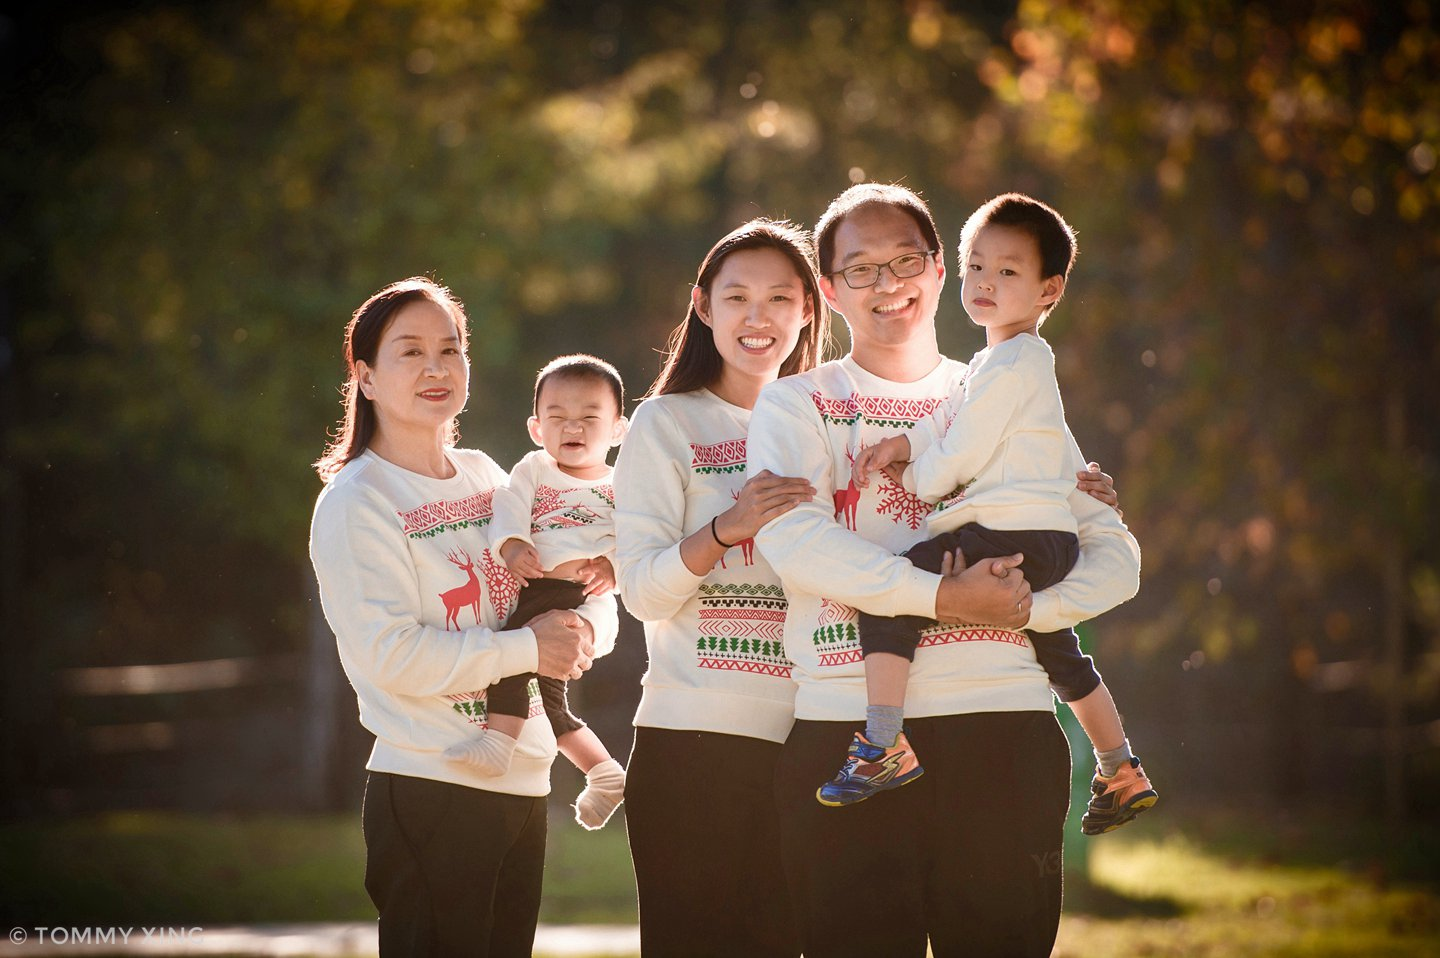 Los Angeles Family Portrait Photographer 洛杉矶家庭摄影师 Tommy Xing  10.jpg